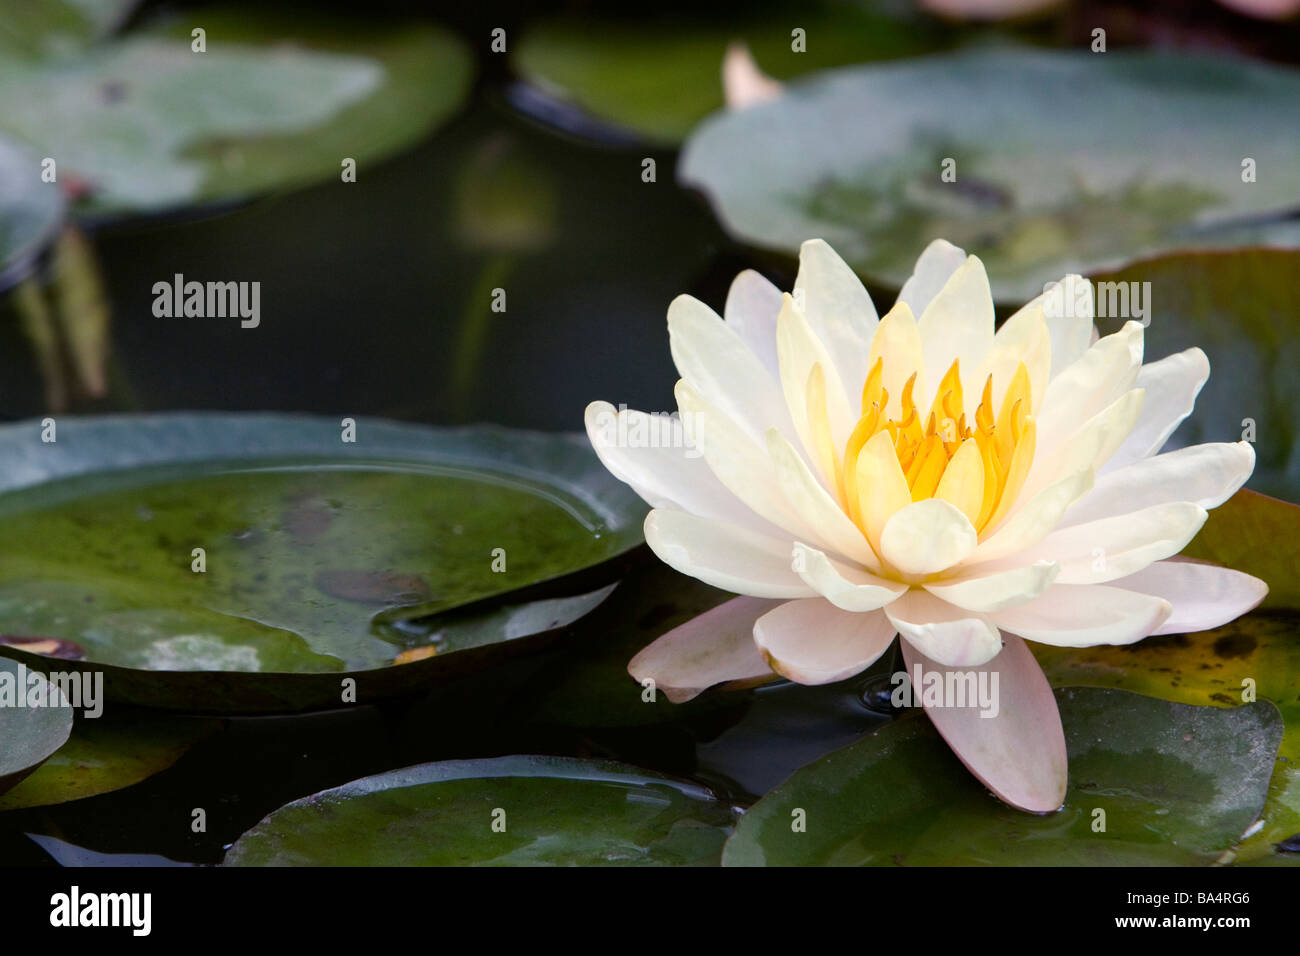 Lotus flower stock photos lotus flower stock images alamy water lily flowers on display at the nguyen hue boulevard flower show in ho chi minh izmirmasajfo Gallery